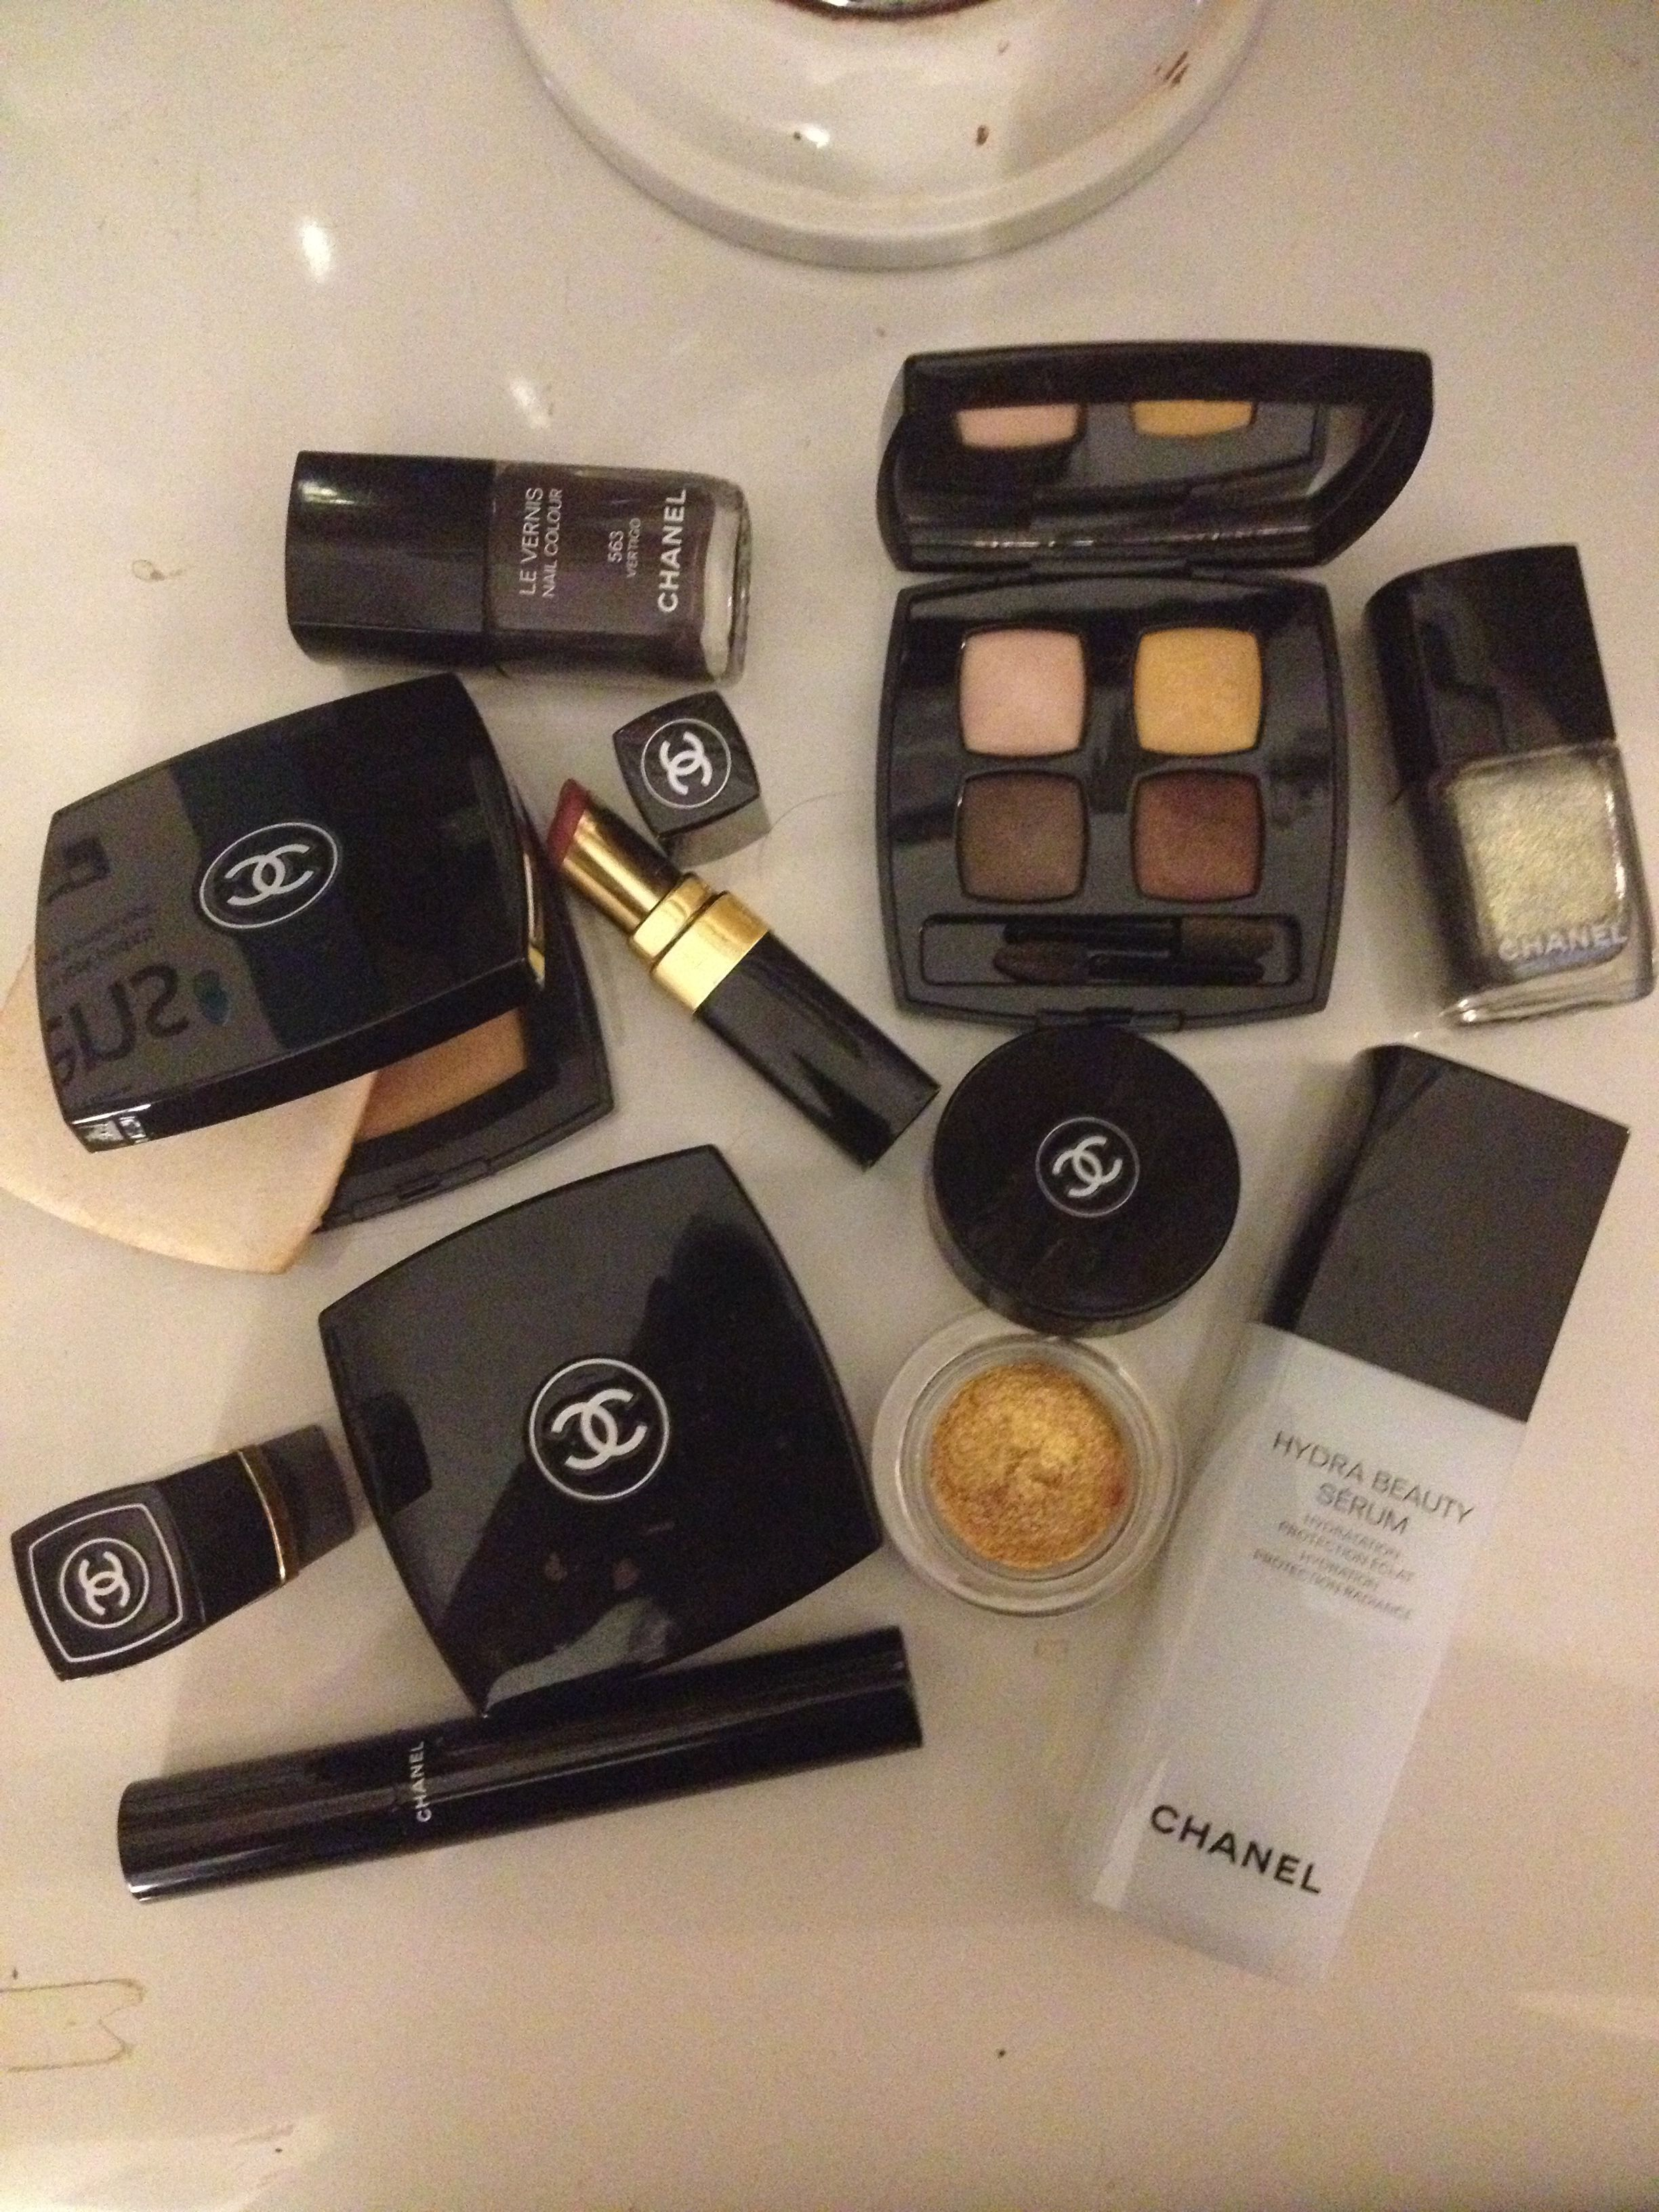 Chanel makeup collection Chanel makeup